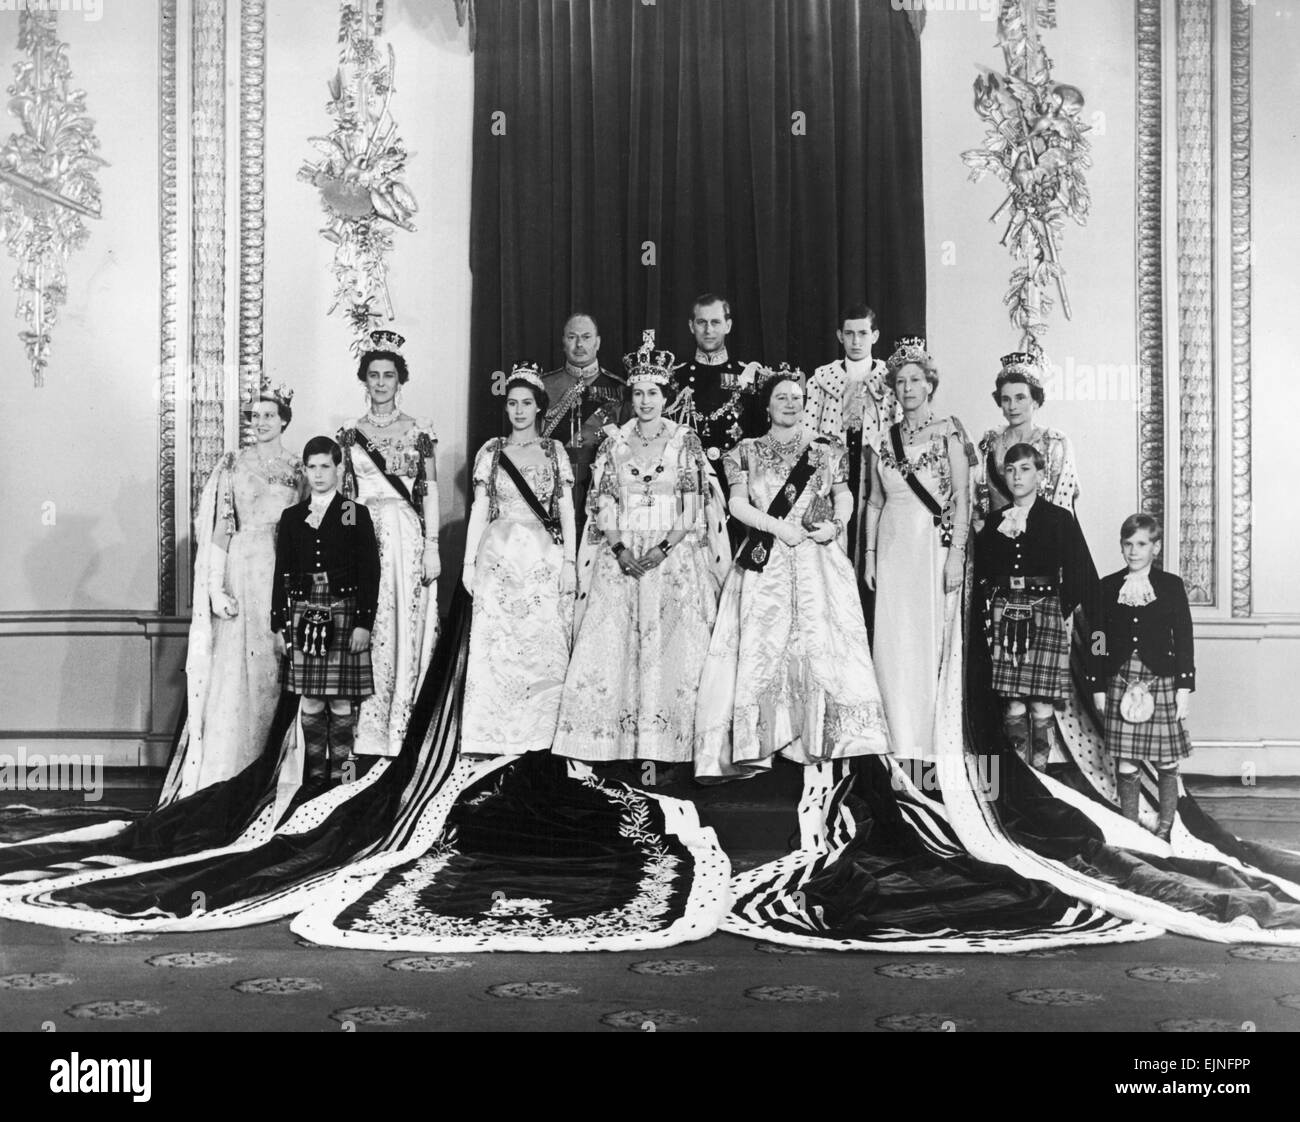 Coronation of Queen Elizabeth II. The Royal Family in their robes after the Coronation. Back Row: The Duke of Gloucester, Stock Photo